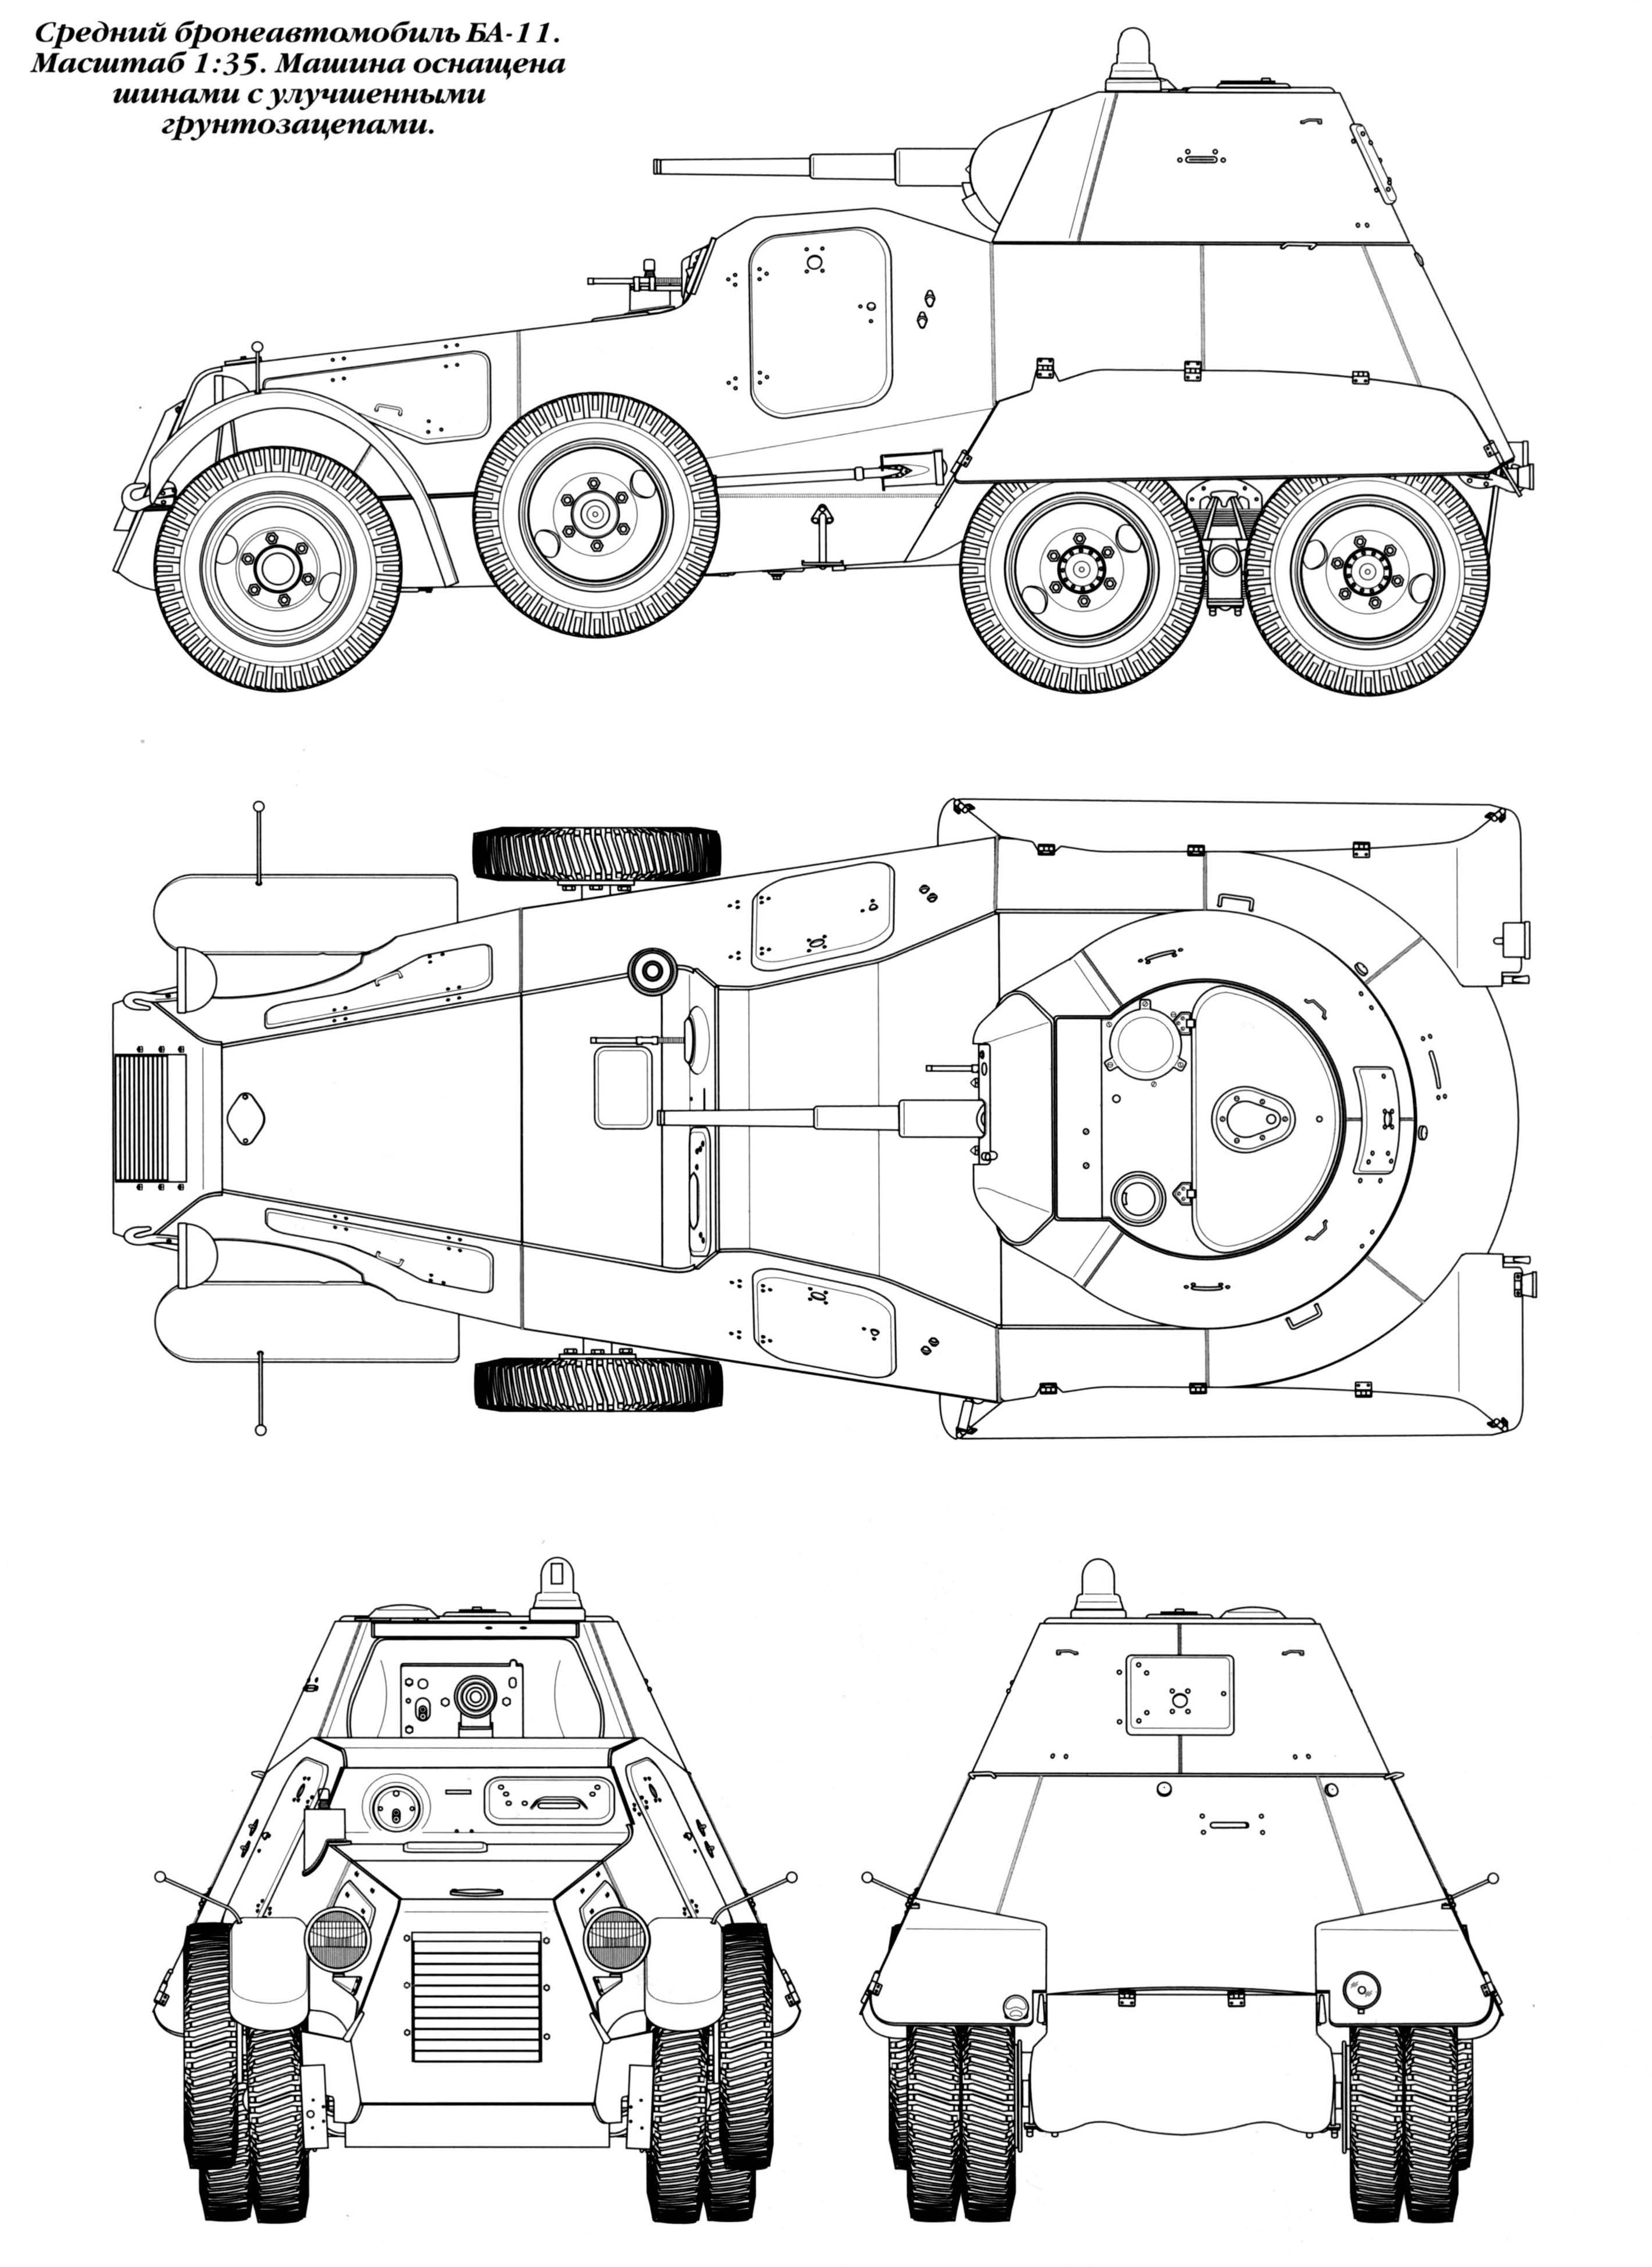 A technical drawing of the BA-11